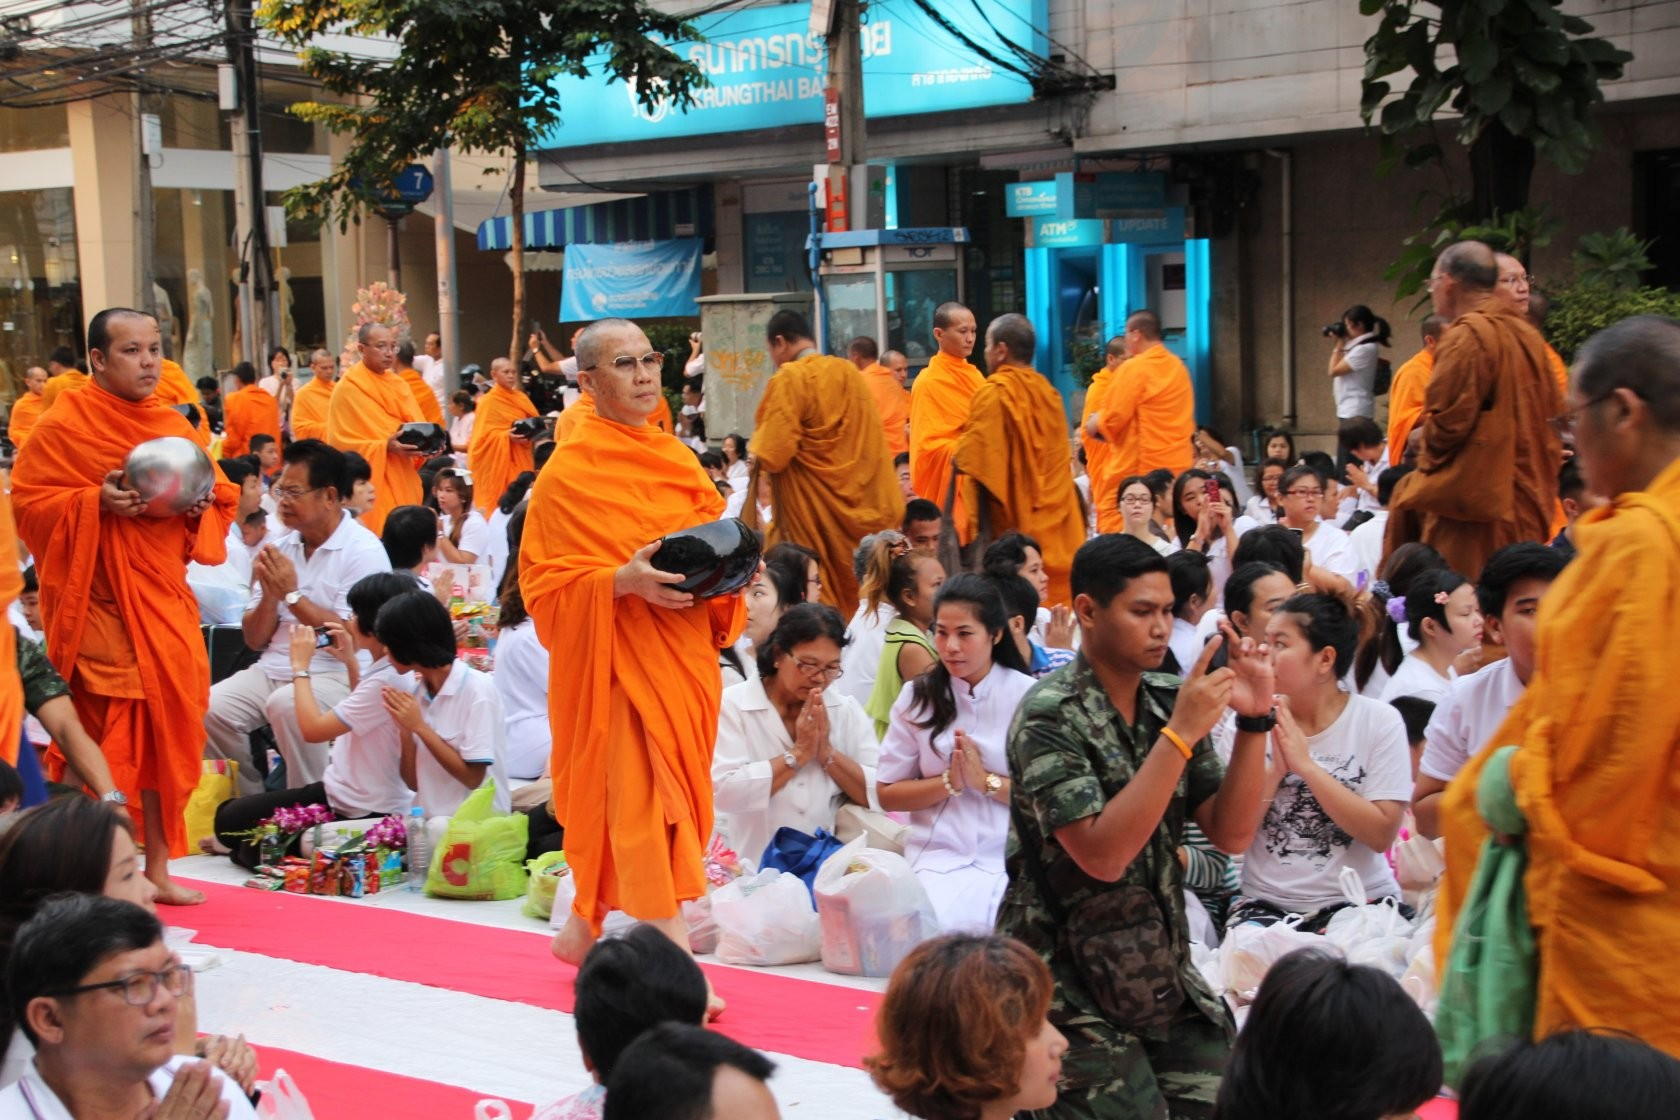 Bangkok - Mass Alms Giving in Thonglor / Sukhumvit Soi 55 XVI